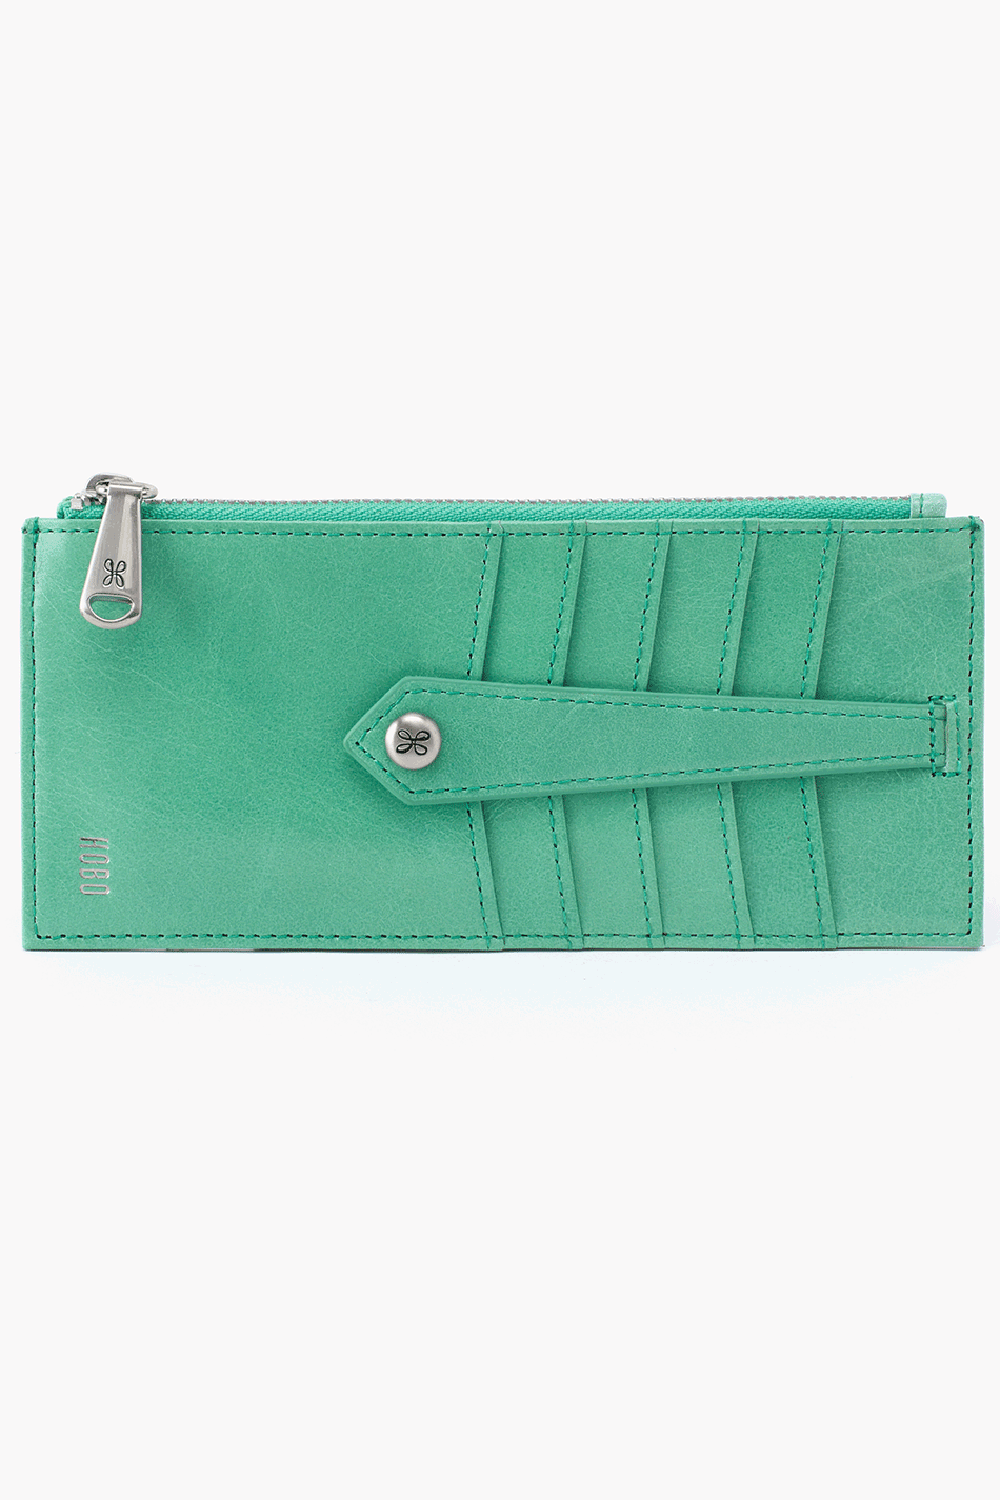 Linn Card Slot Wallet - Mint